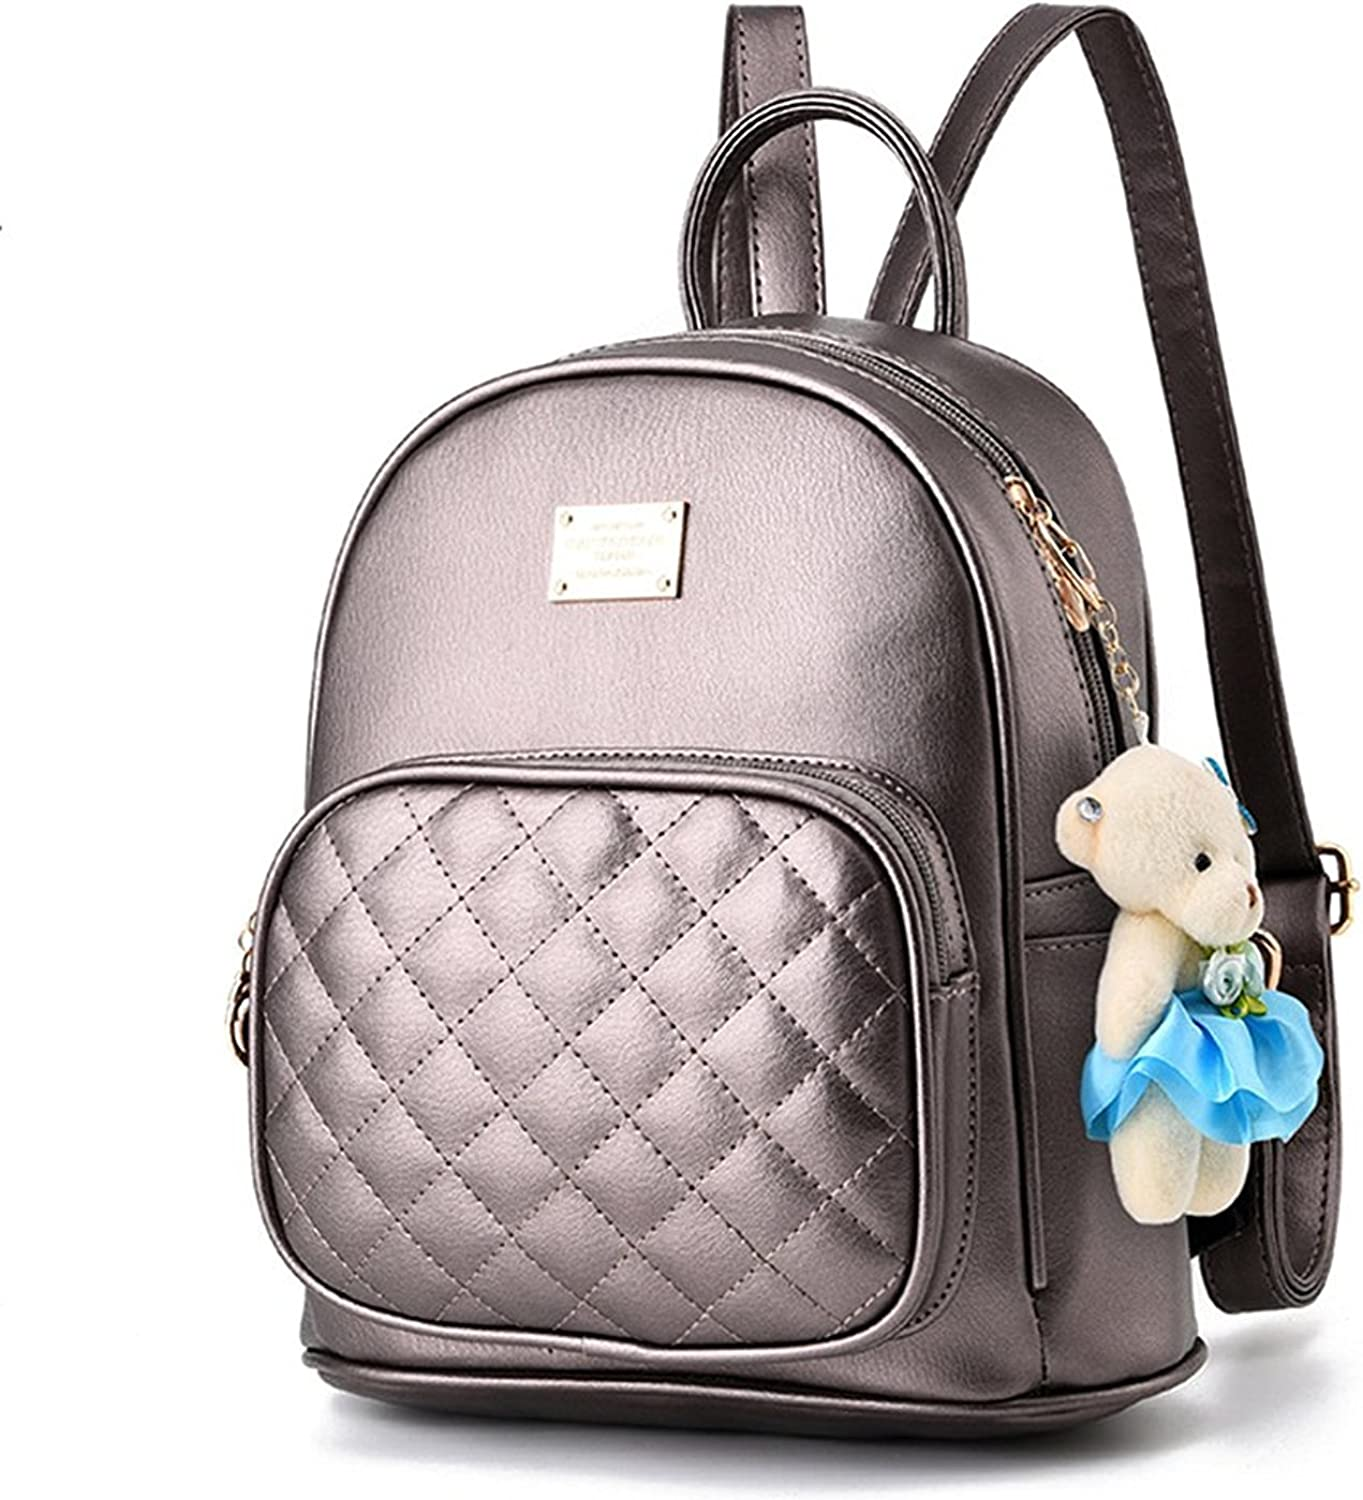 Women Cute Small Leather Backpack Purse Ladies Casual Satchel Travel Backpack for Girls